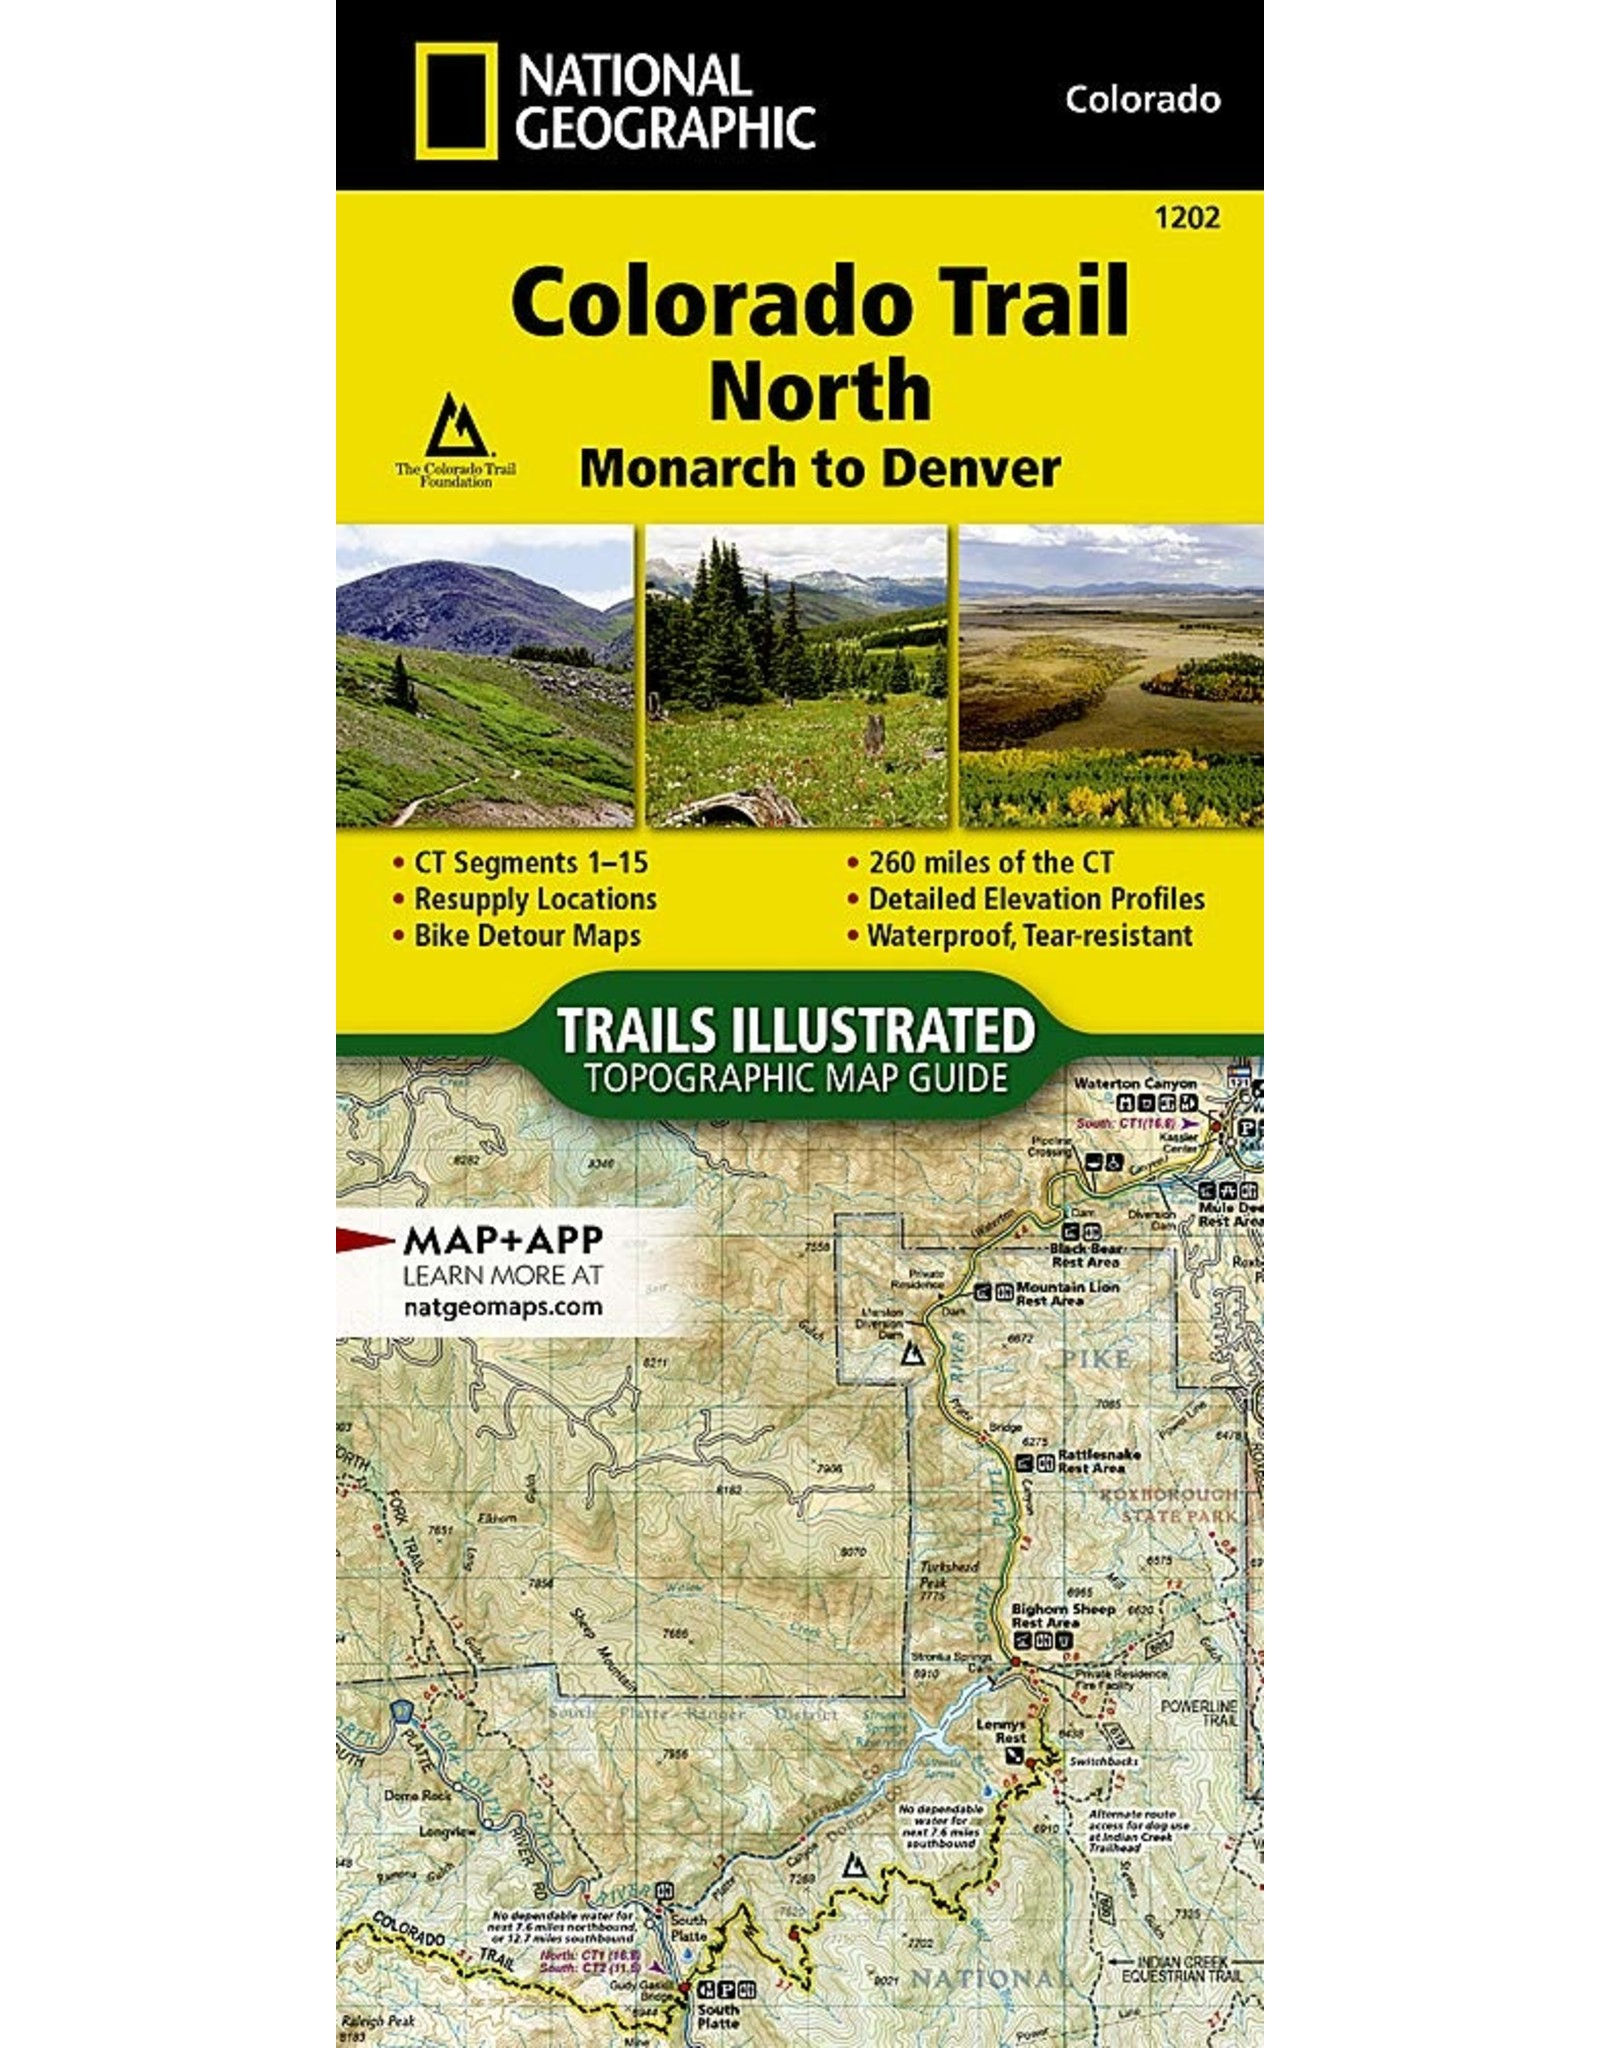 Nat Geo Colorado Trail North, Monarch to Denver (National Geographic Topographic Map Guide, 1202) Map – Folded Map